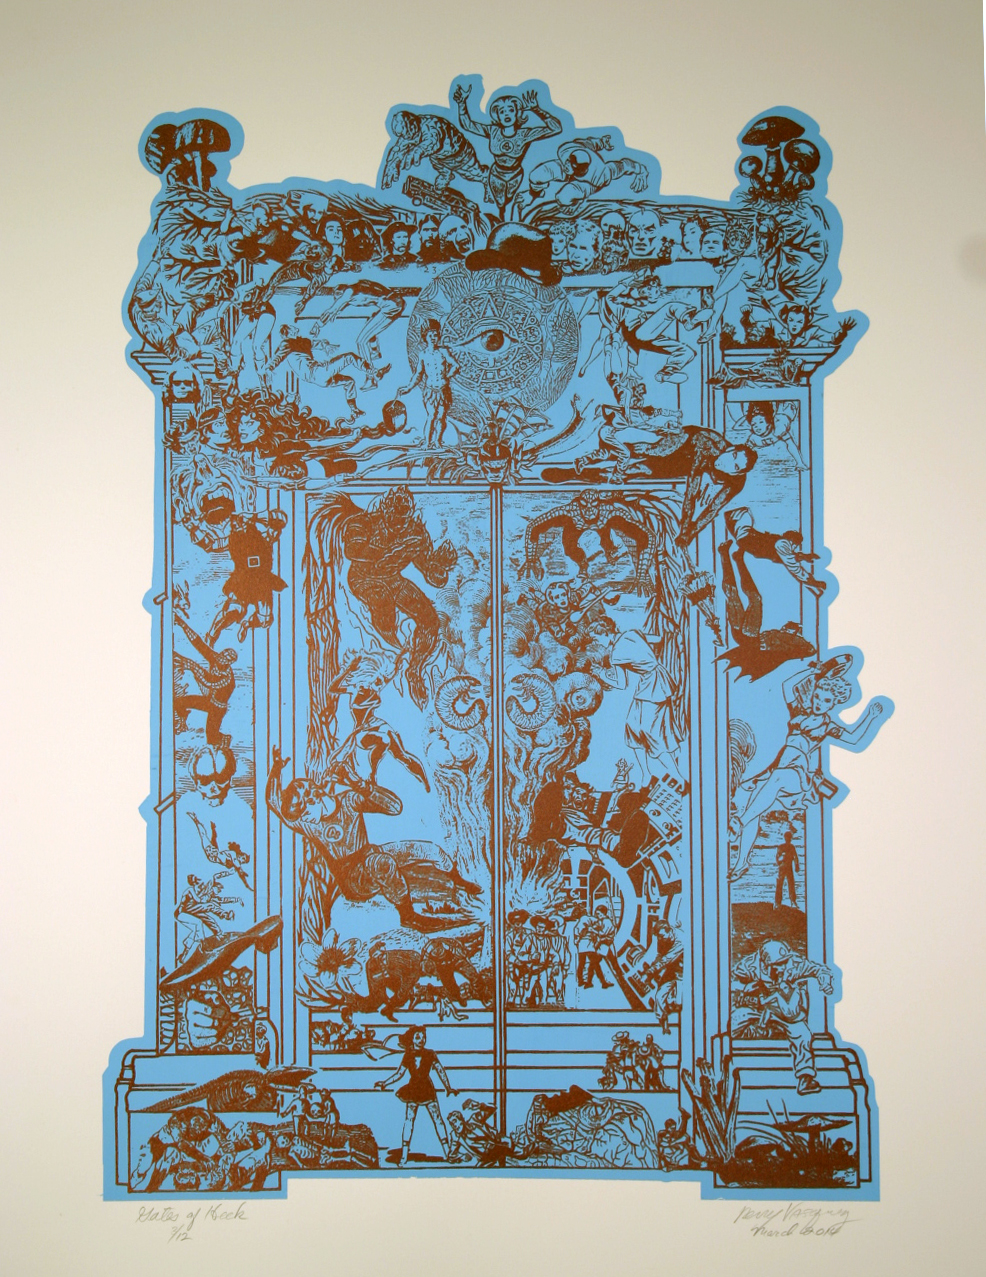 "Title: Gates of Heck  Dimensions: 18"" x 24"" Medium: Silk screen print Date: 2008 Notes: Rodin's sculpture,  Le Porte de l'Enfer,  serves as a conceptual and structural framework for this print. The original mythical and literary figures of Dante's  Inferno  that Rodin brought to life are updated and replaced with characters from the universe of comic book super heroes."